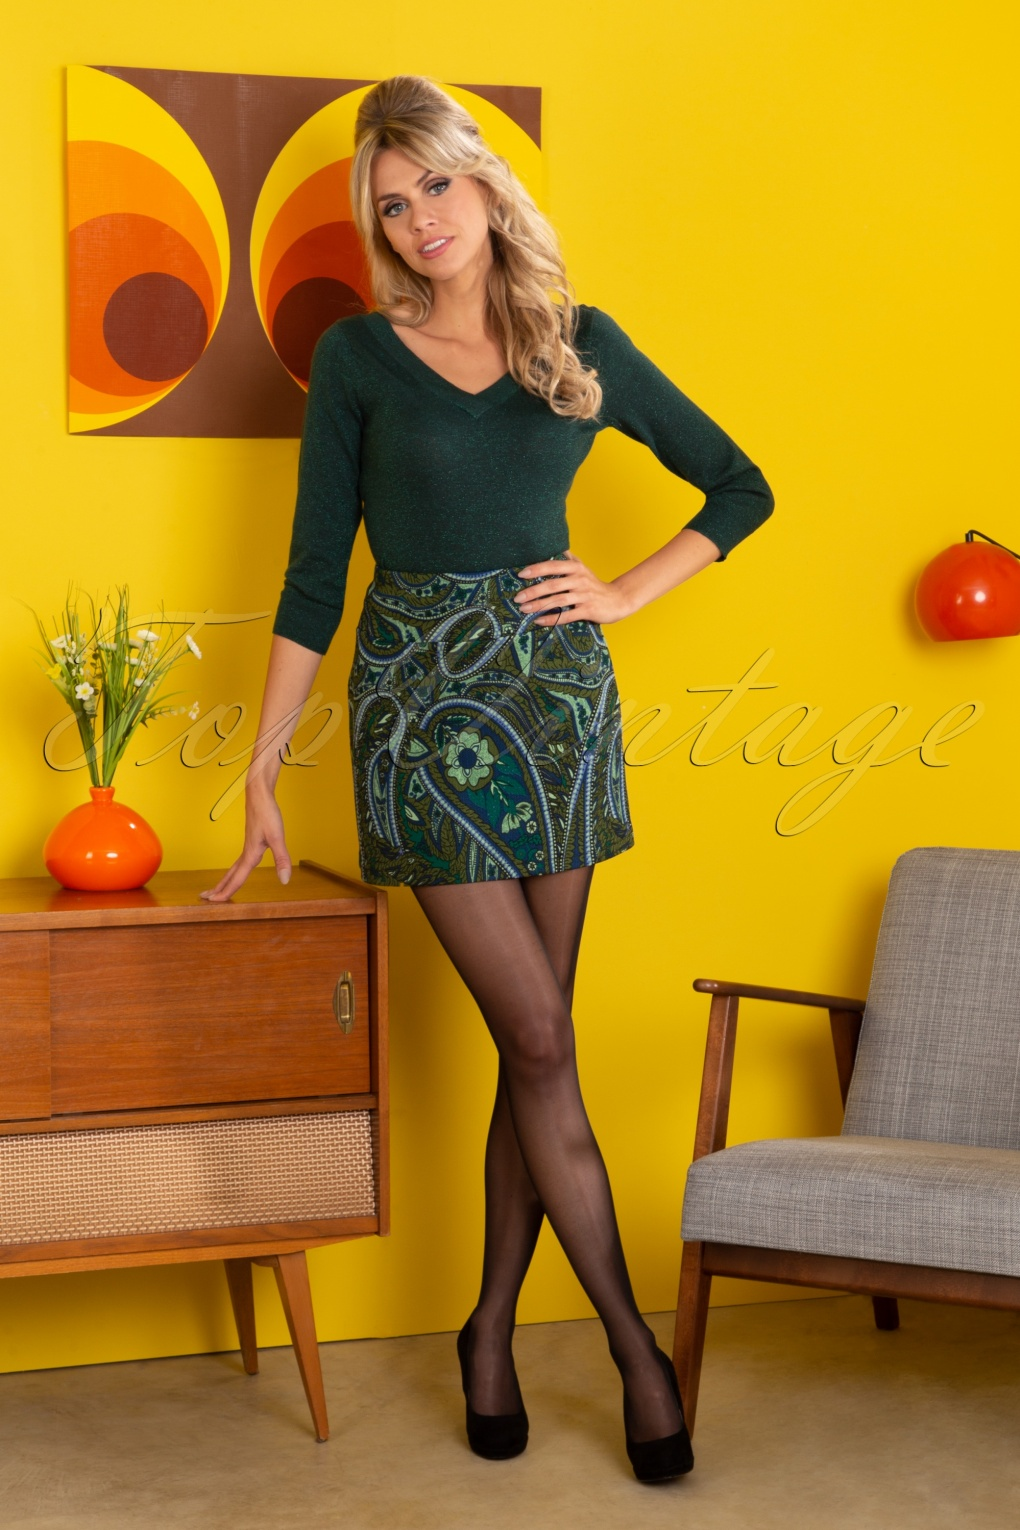 Retro Skirts: Vintage, Pencil, Circle, & Plus Sizes 60s Olivia Teardrop Skirt in Olive Green £59.60 AT vintagedancer.com